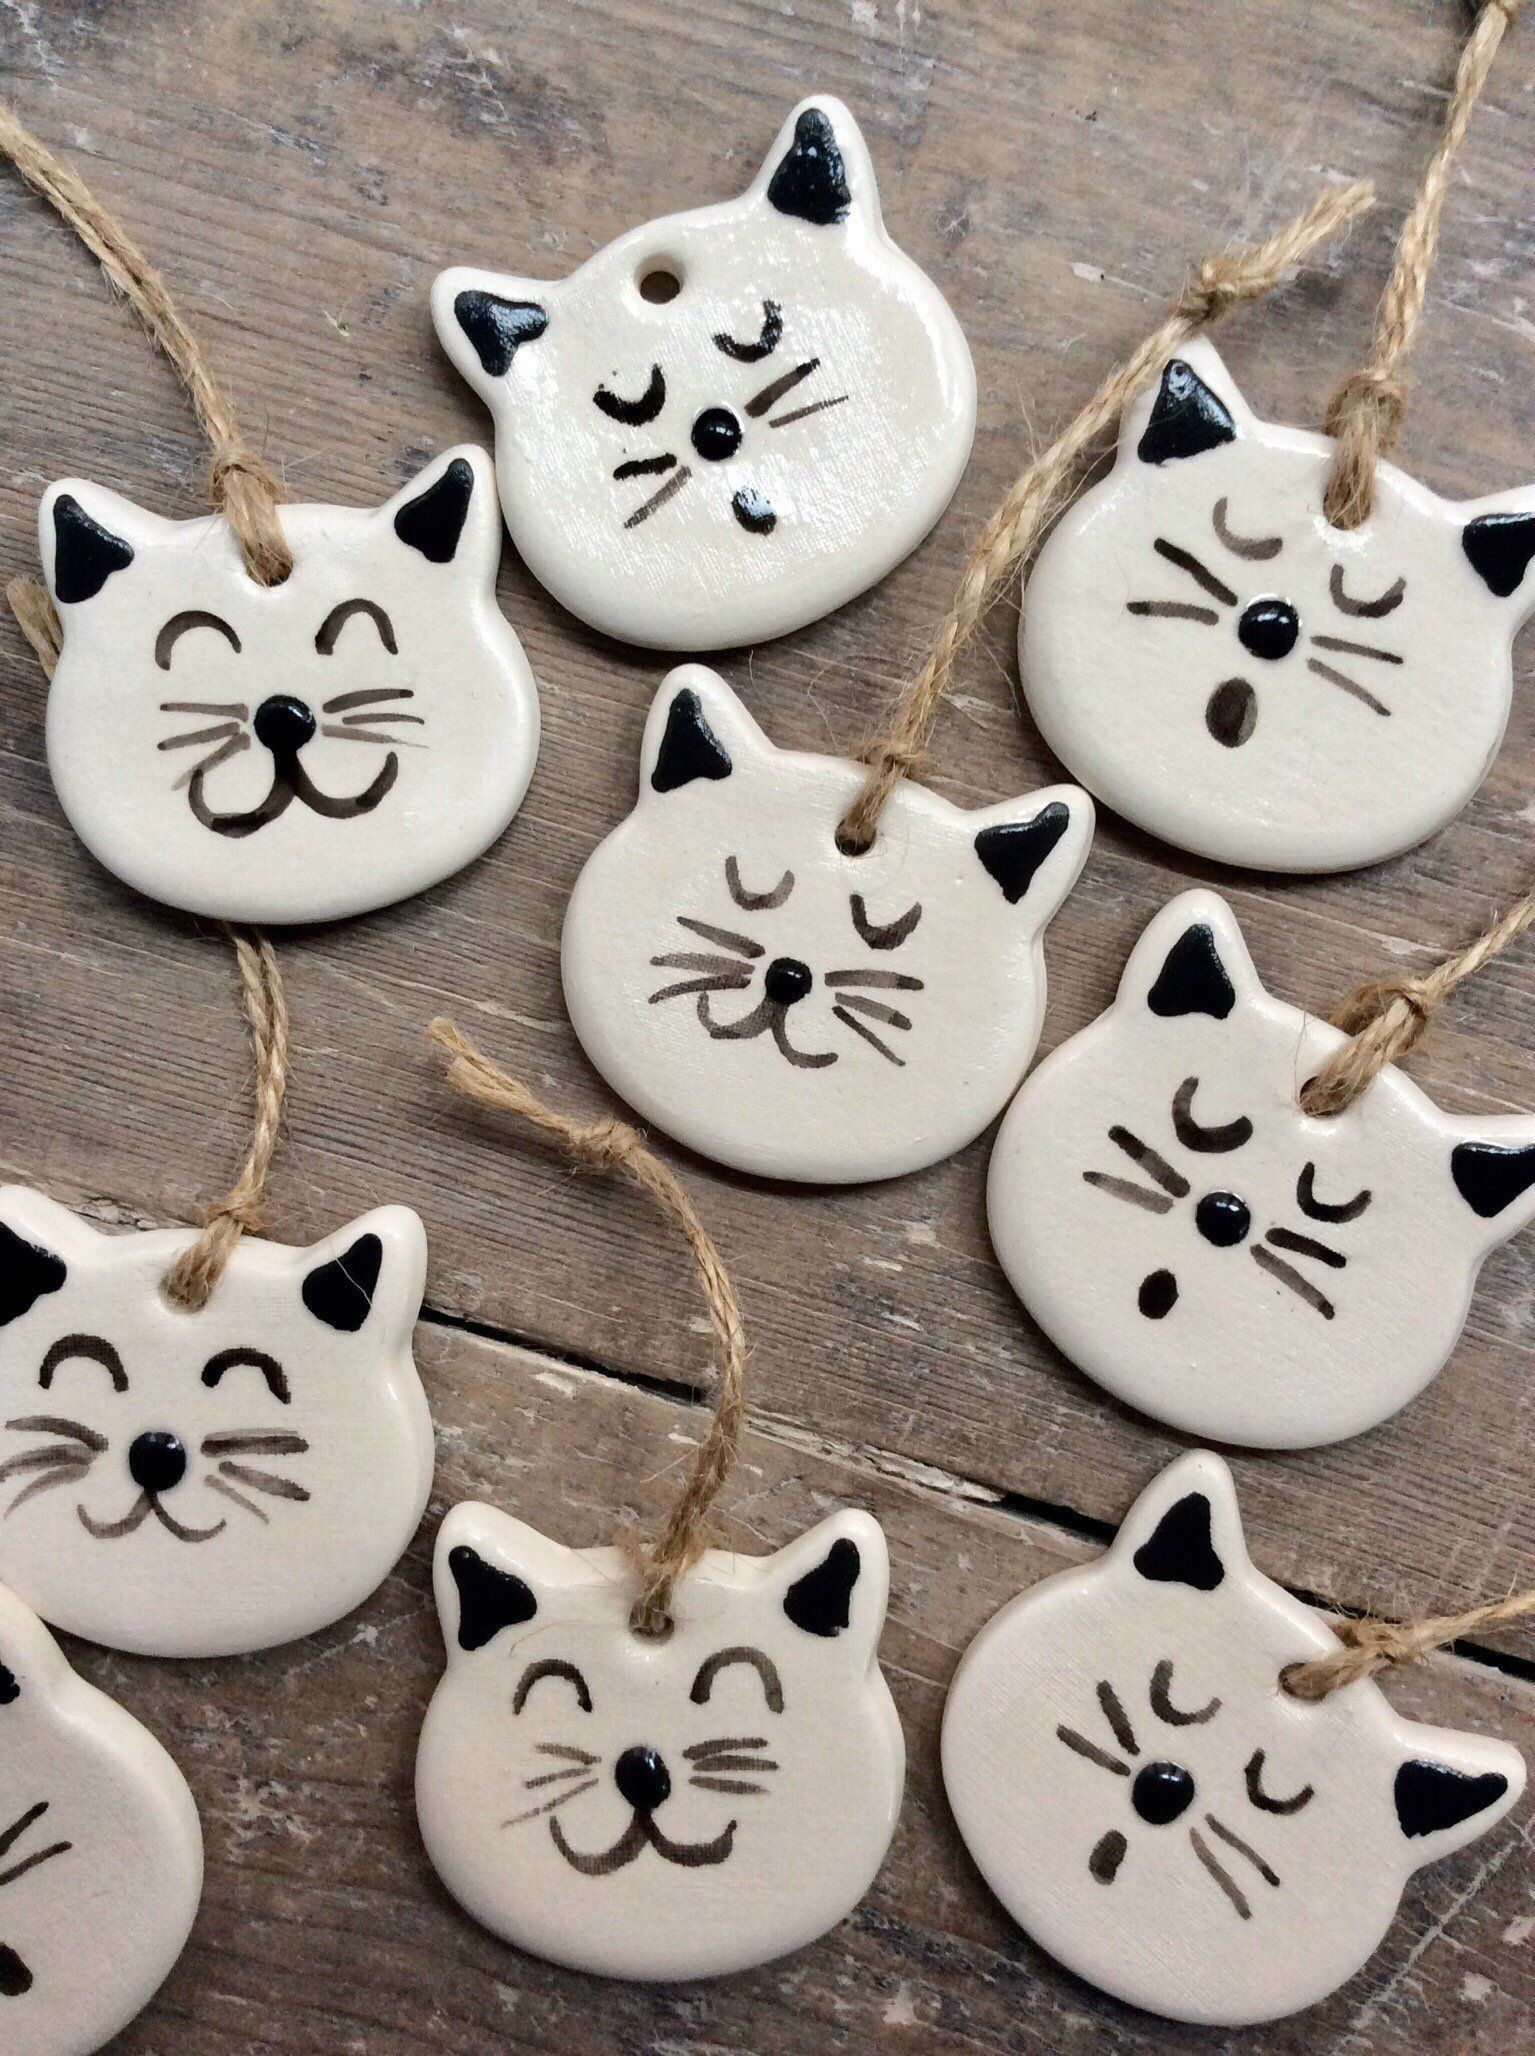 Handmade, hand painted hanging rustic white ceramic cat decoration, perfect Christmas, Valentine's Day, wedding favours or gift. - Ceramics pottery #Cat #Ceramic #Ceramics #Christmas #day #decoration #favours #gift #Hand #Handmade #Hanging #painted #perfect #pottery #Rustic #Valentines #Wedding #White #CatPlayground #Cat #Playground